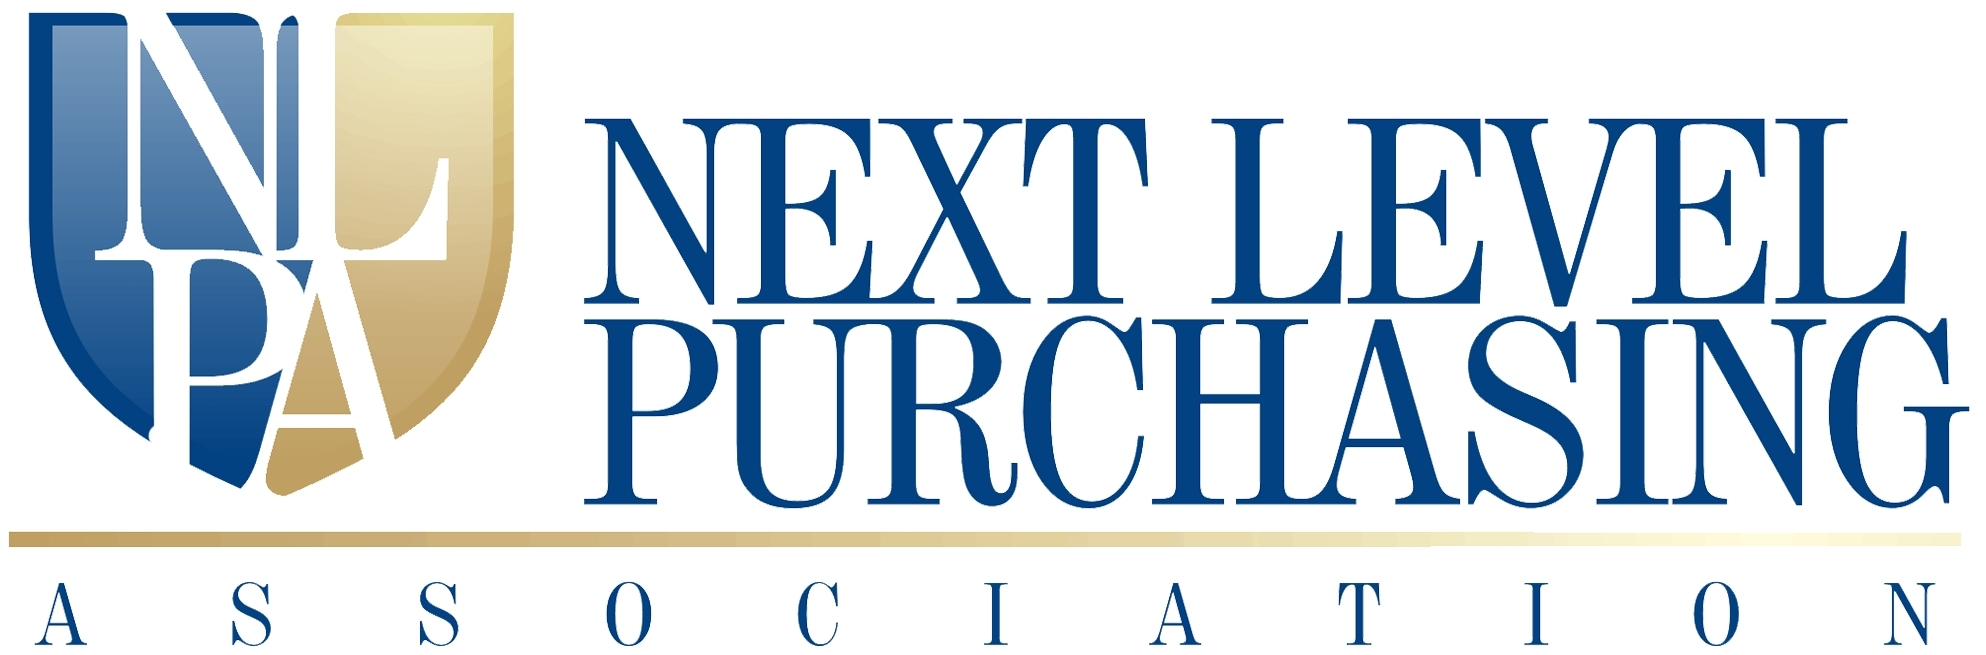 Next Level Purchasing Delivers Supply Chain Social Responsibility